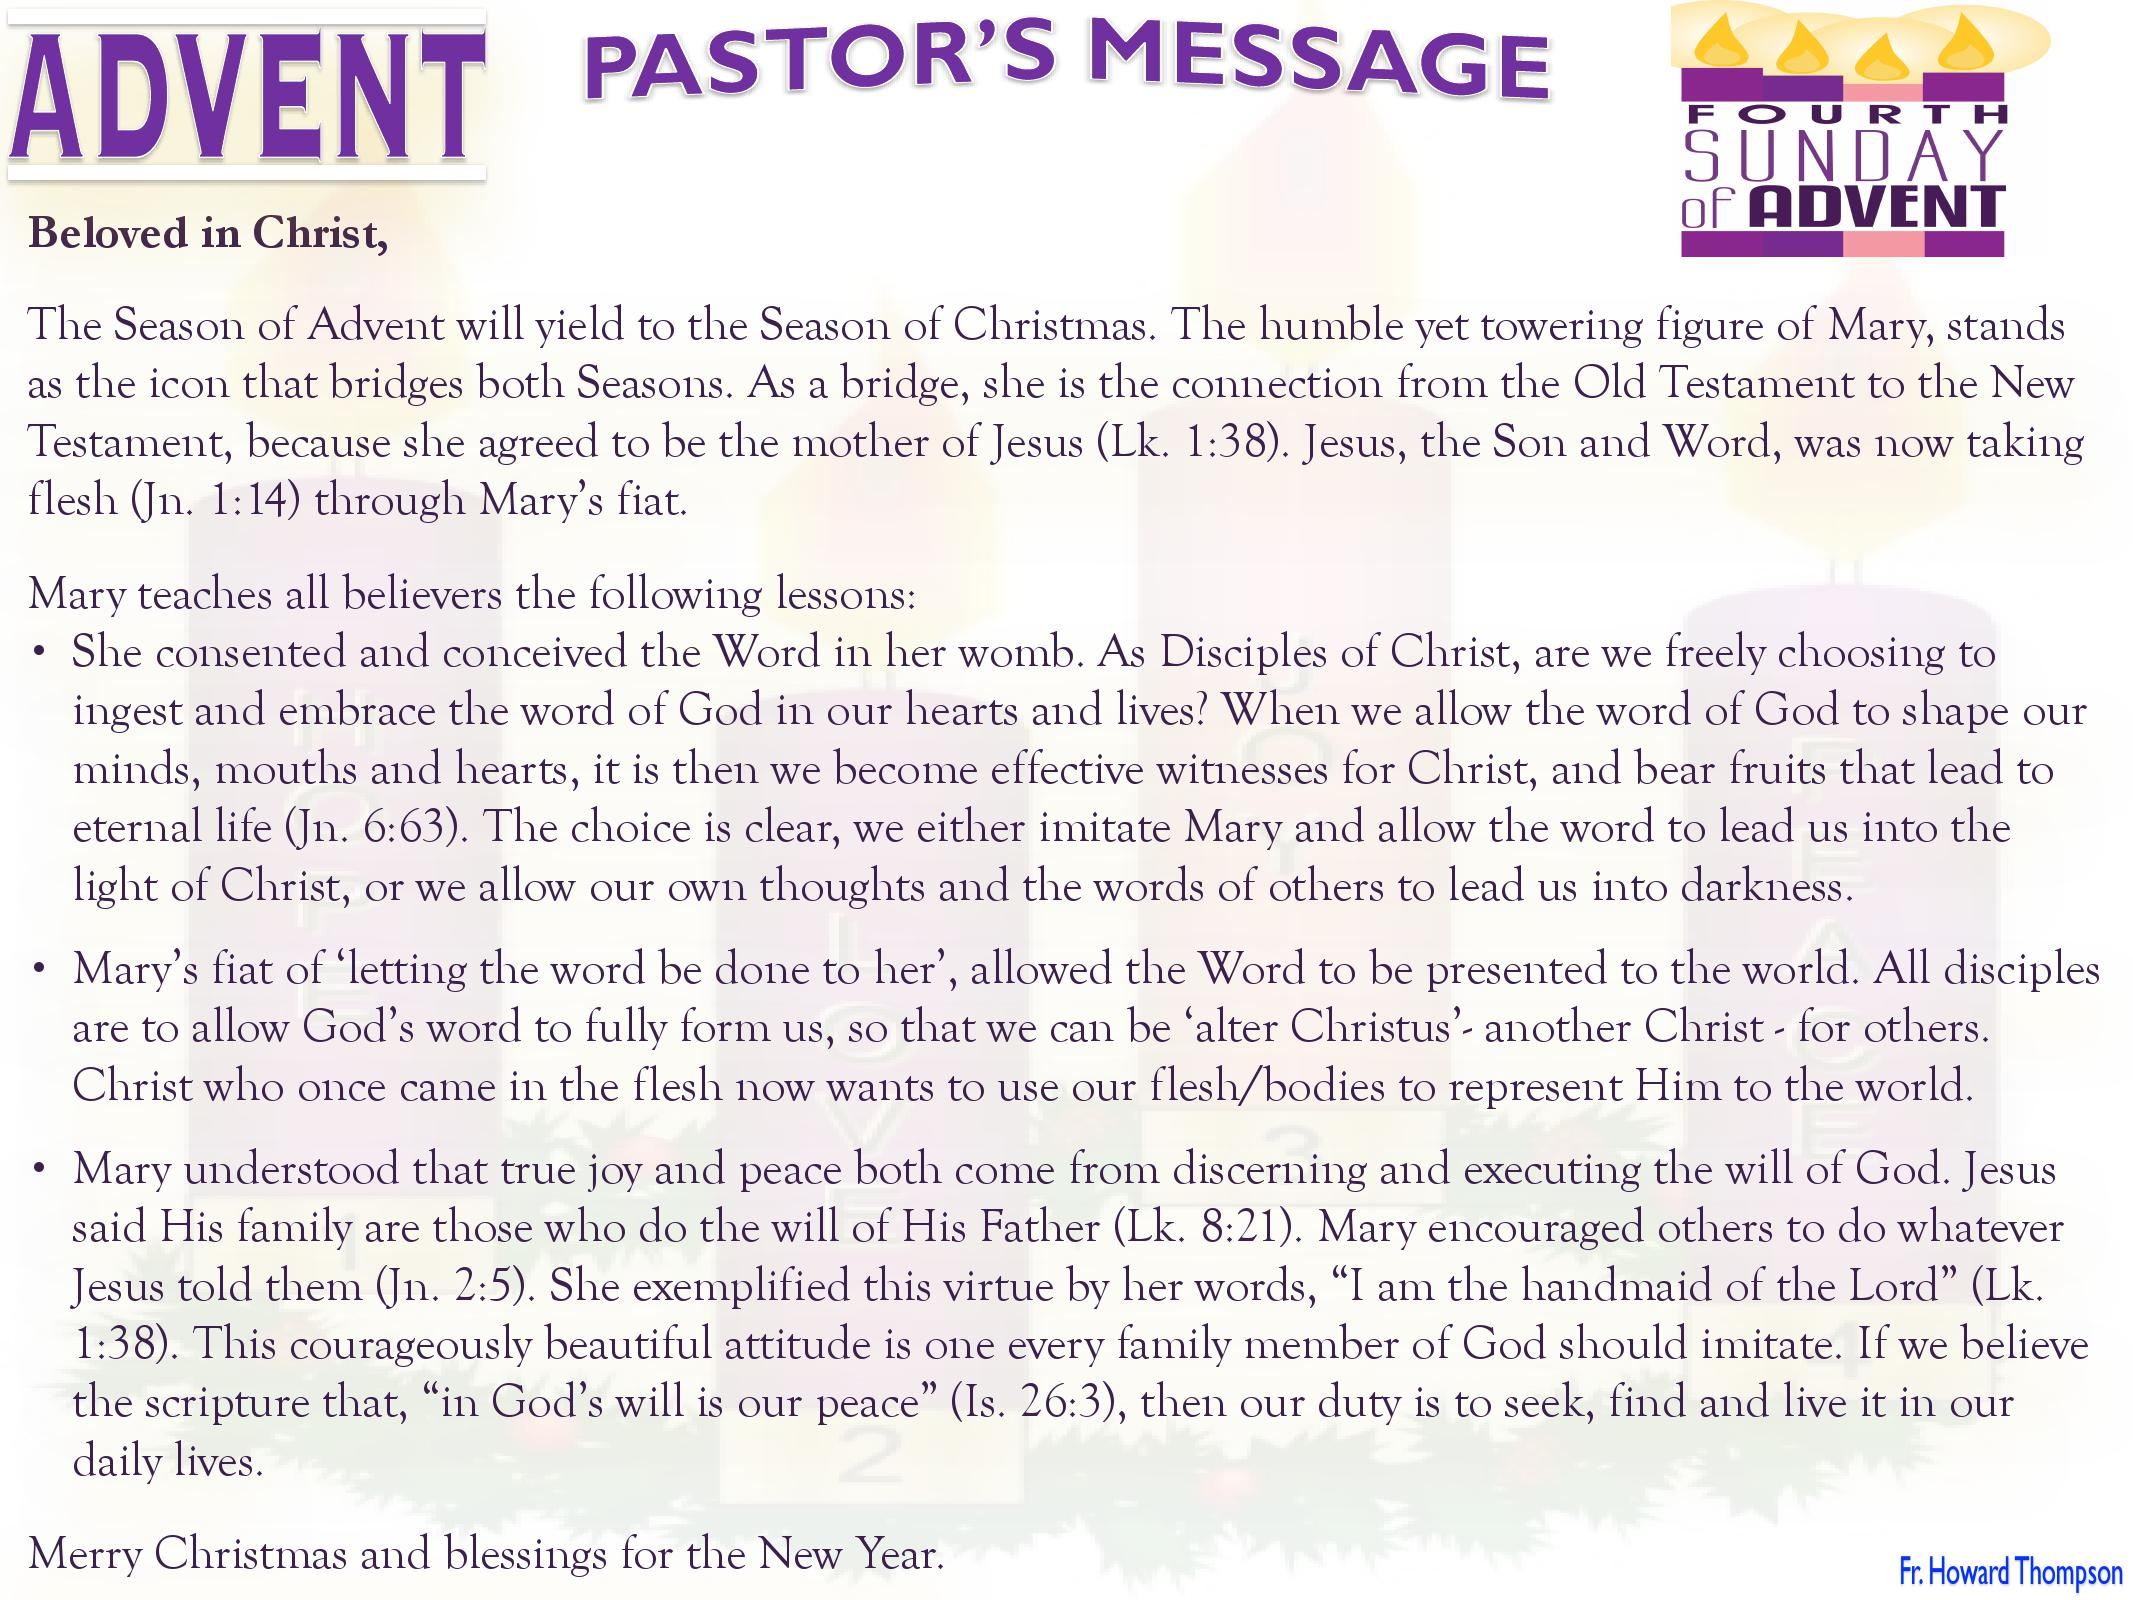 Pastor's Message - 04 Sunday of Advent_000001